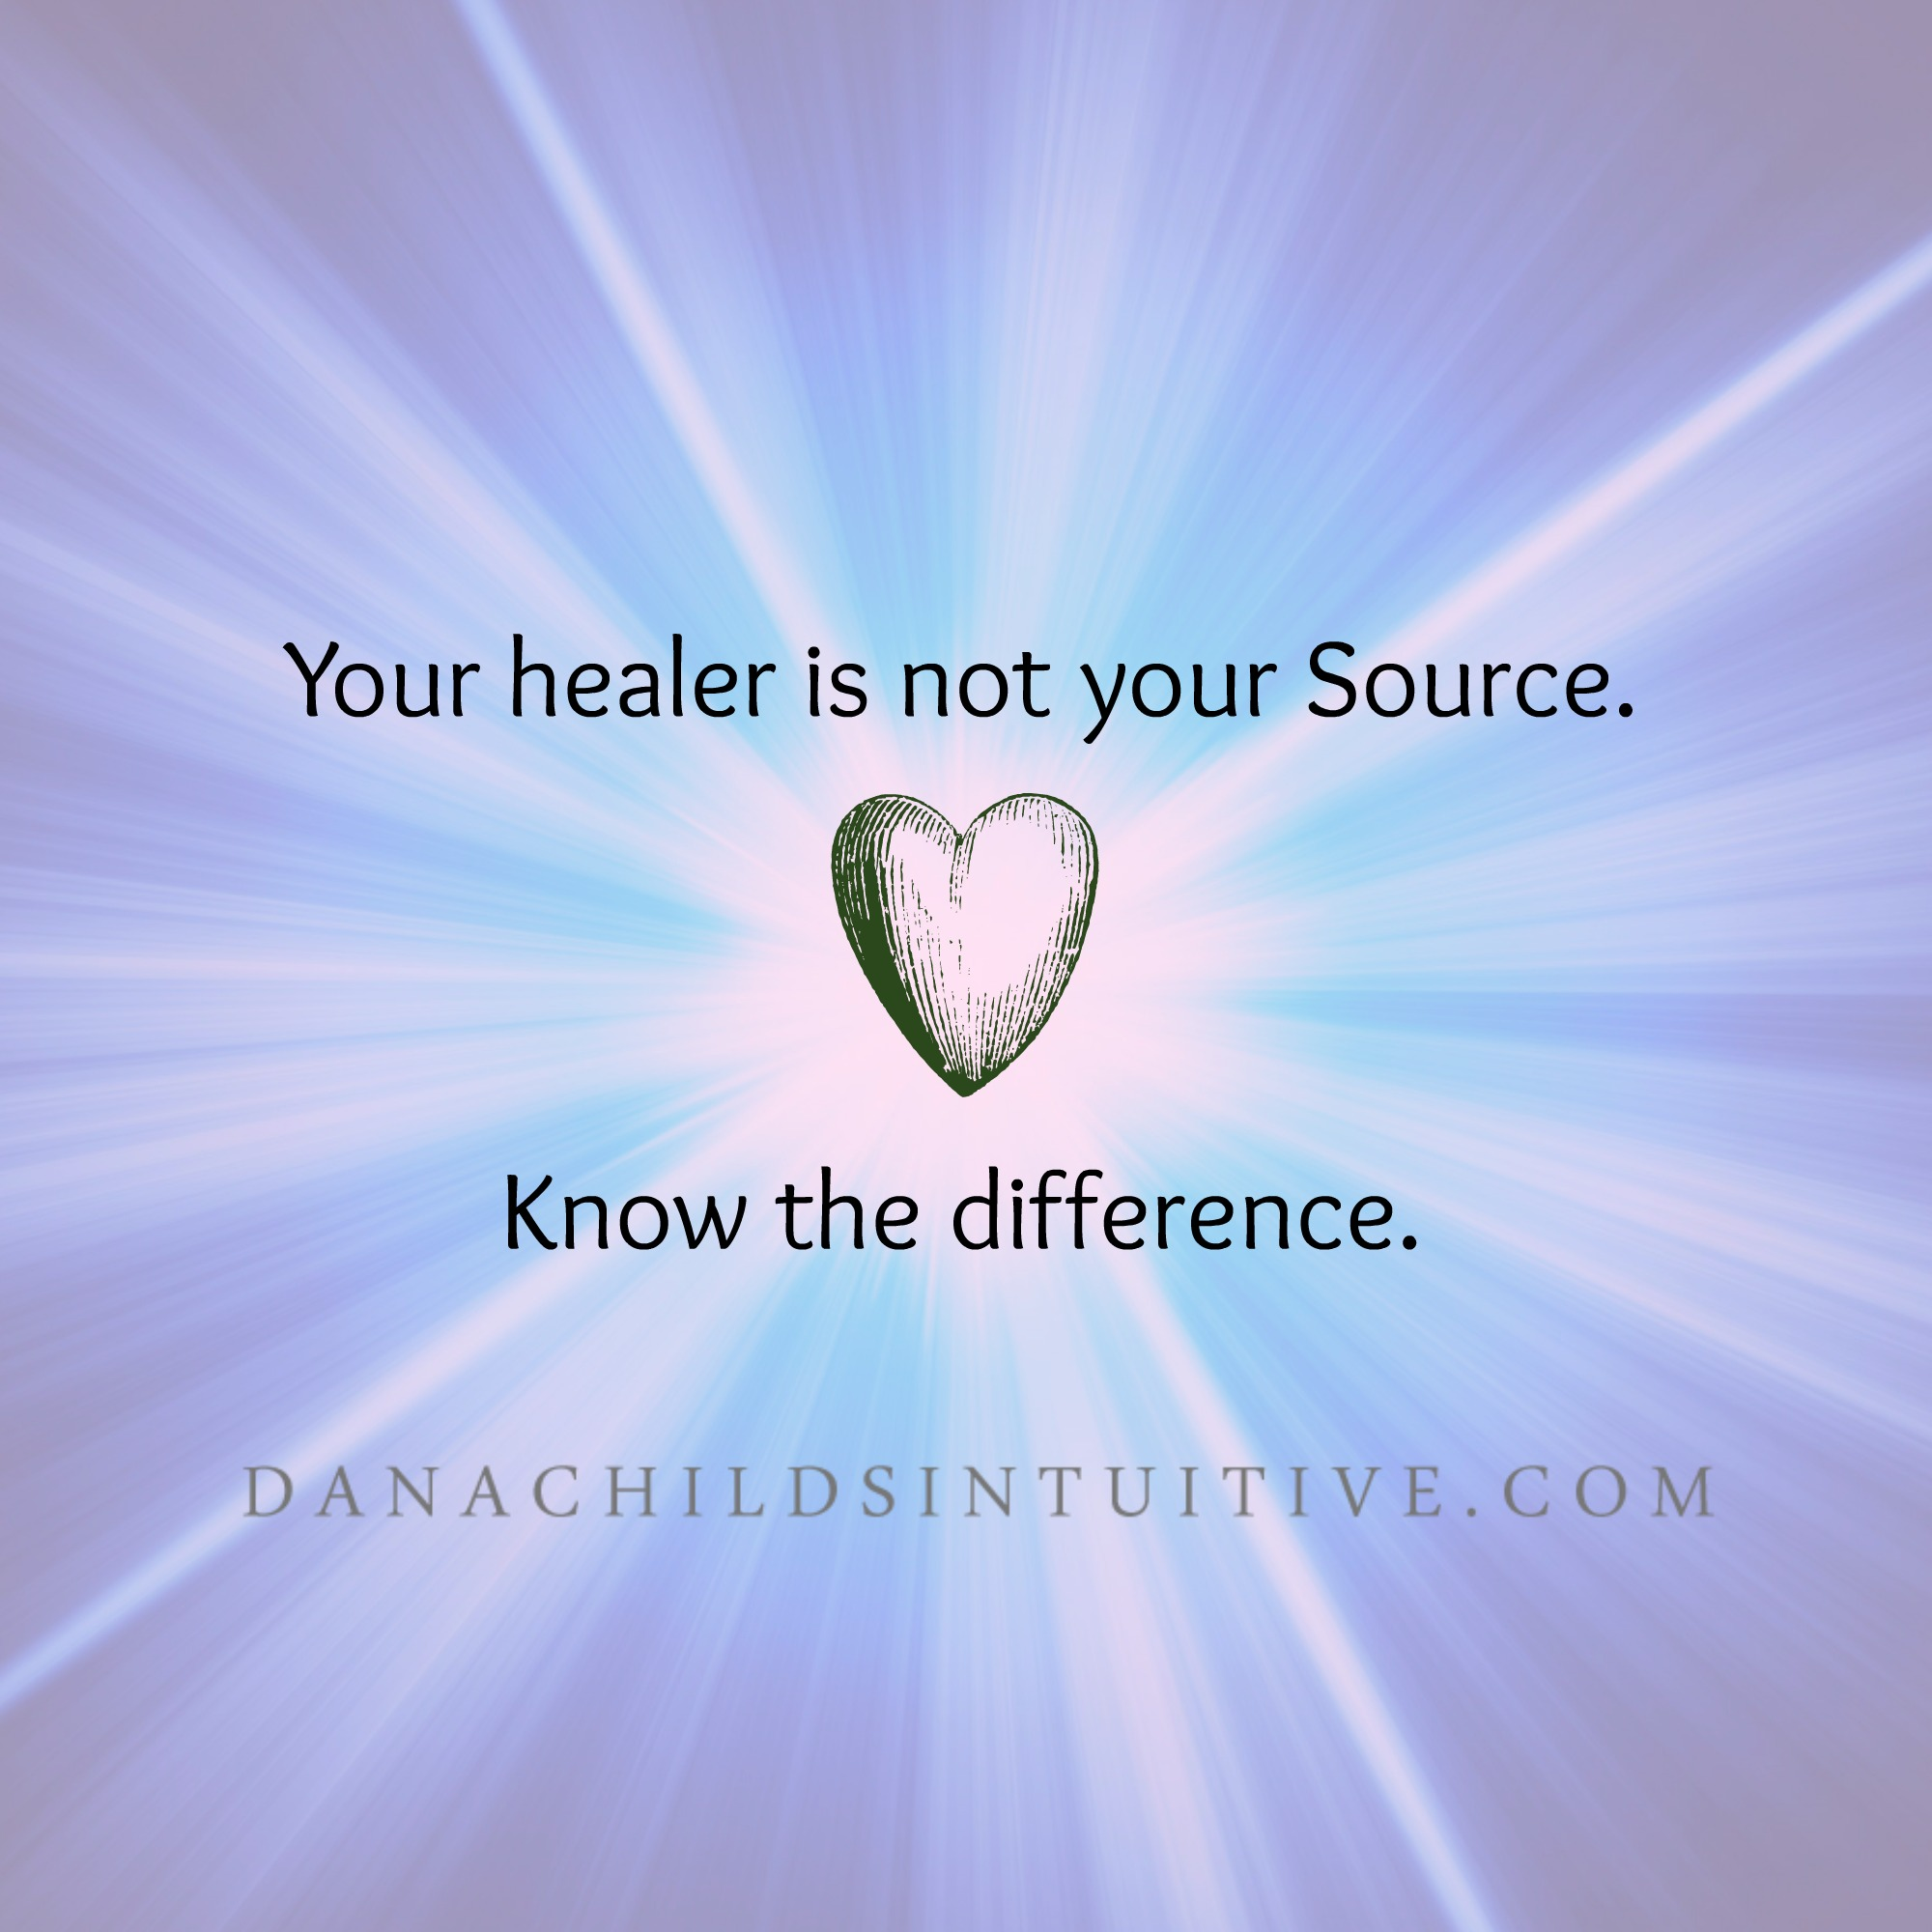 your healer is not your source watermarked